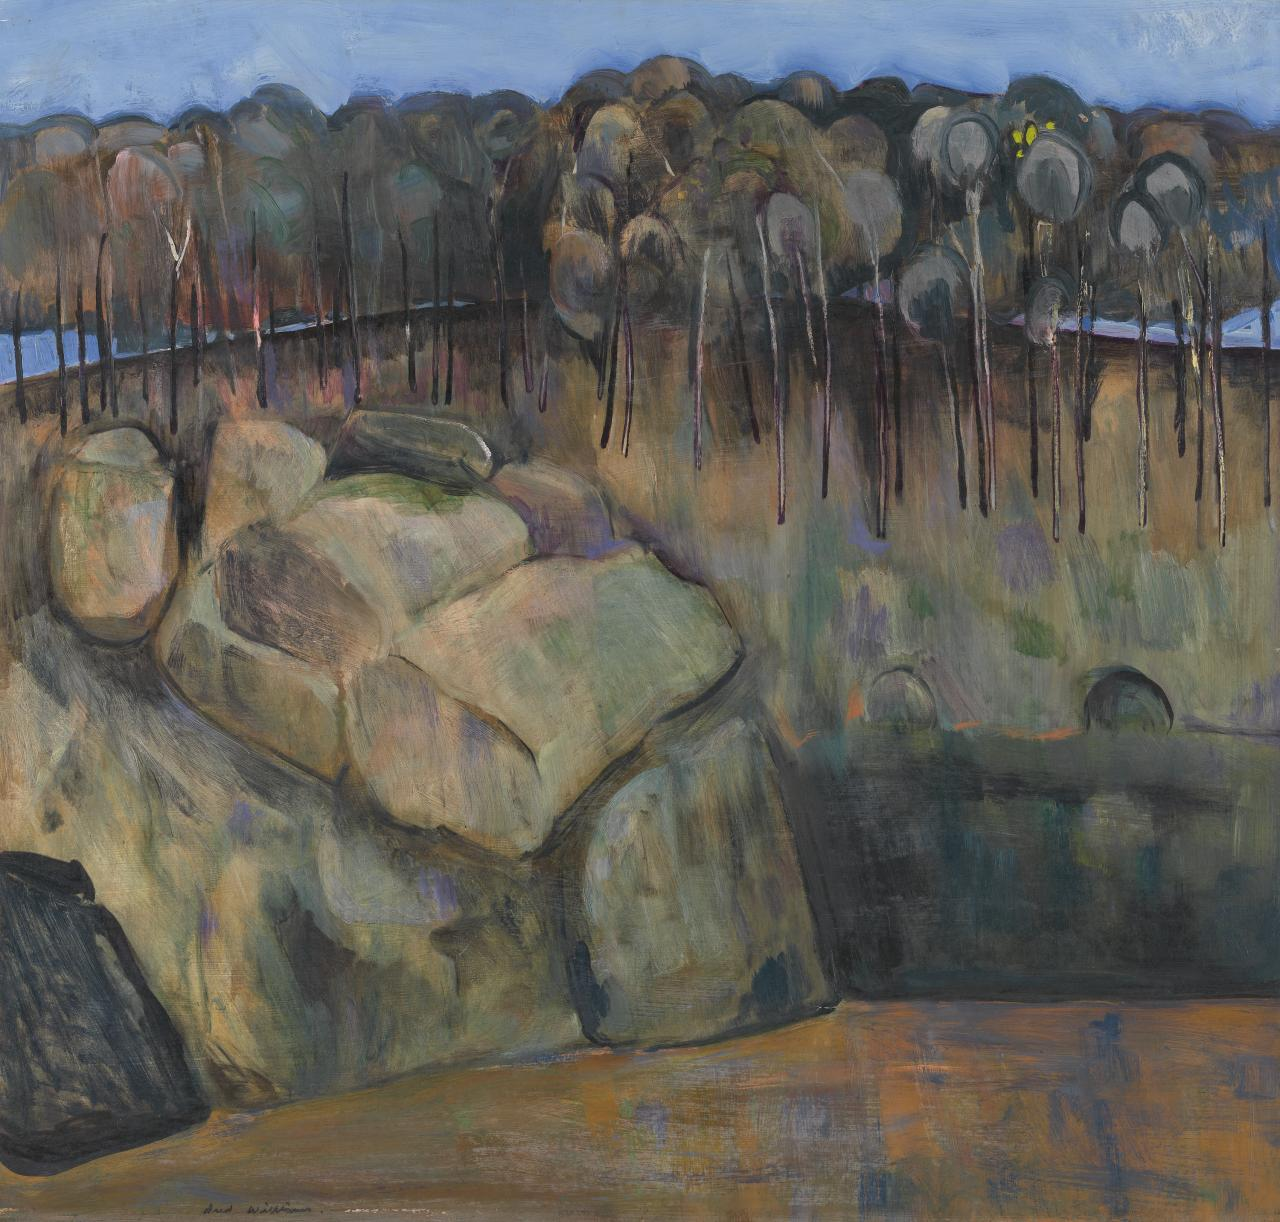 Fred WILLIAMS The Nattai River (1958)